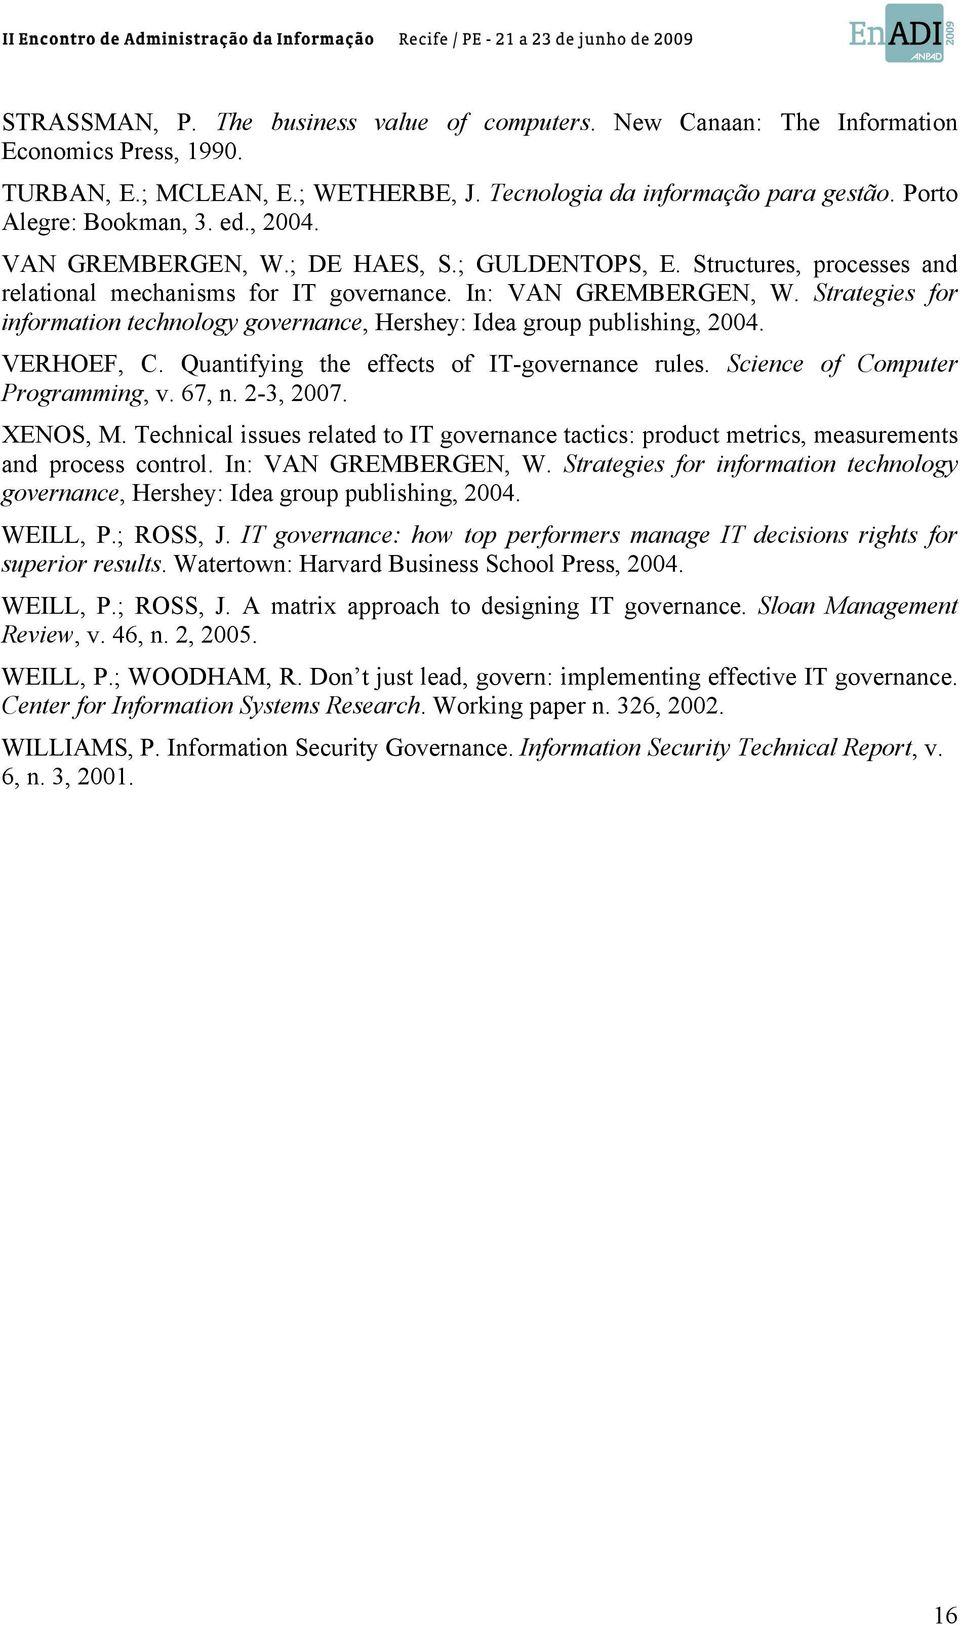 Strategies for information technology governance, Hershey: Idea group publishing, 2004. VERHOEF, C. Quantifying the effects of IT-governance rules. Science of Computer Programming, v. 67, n.